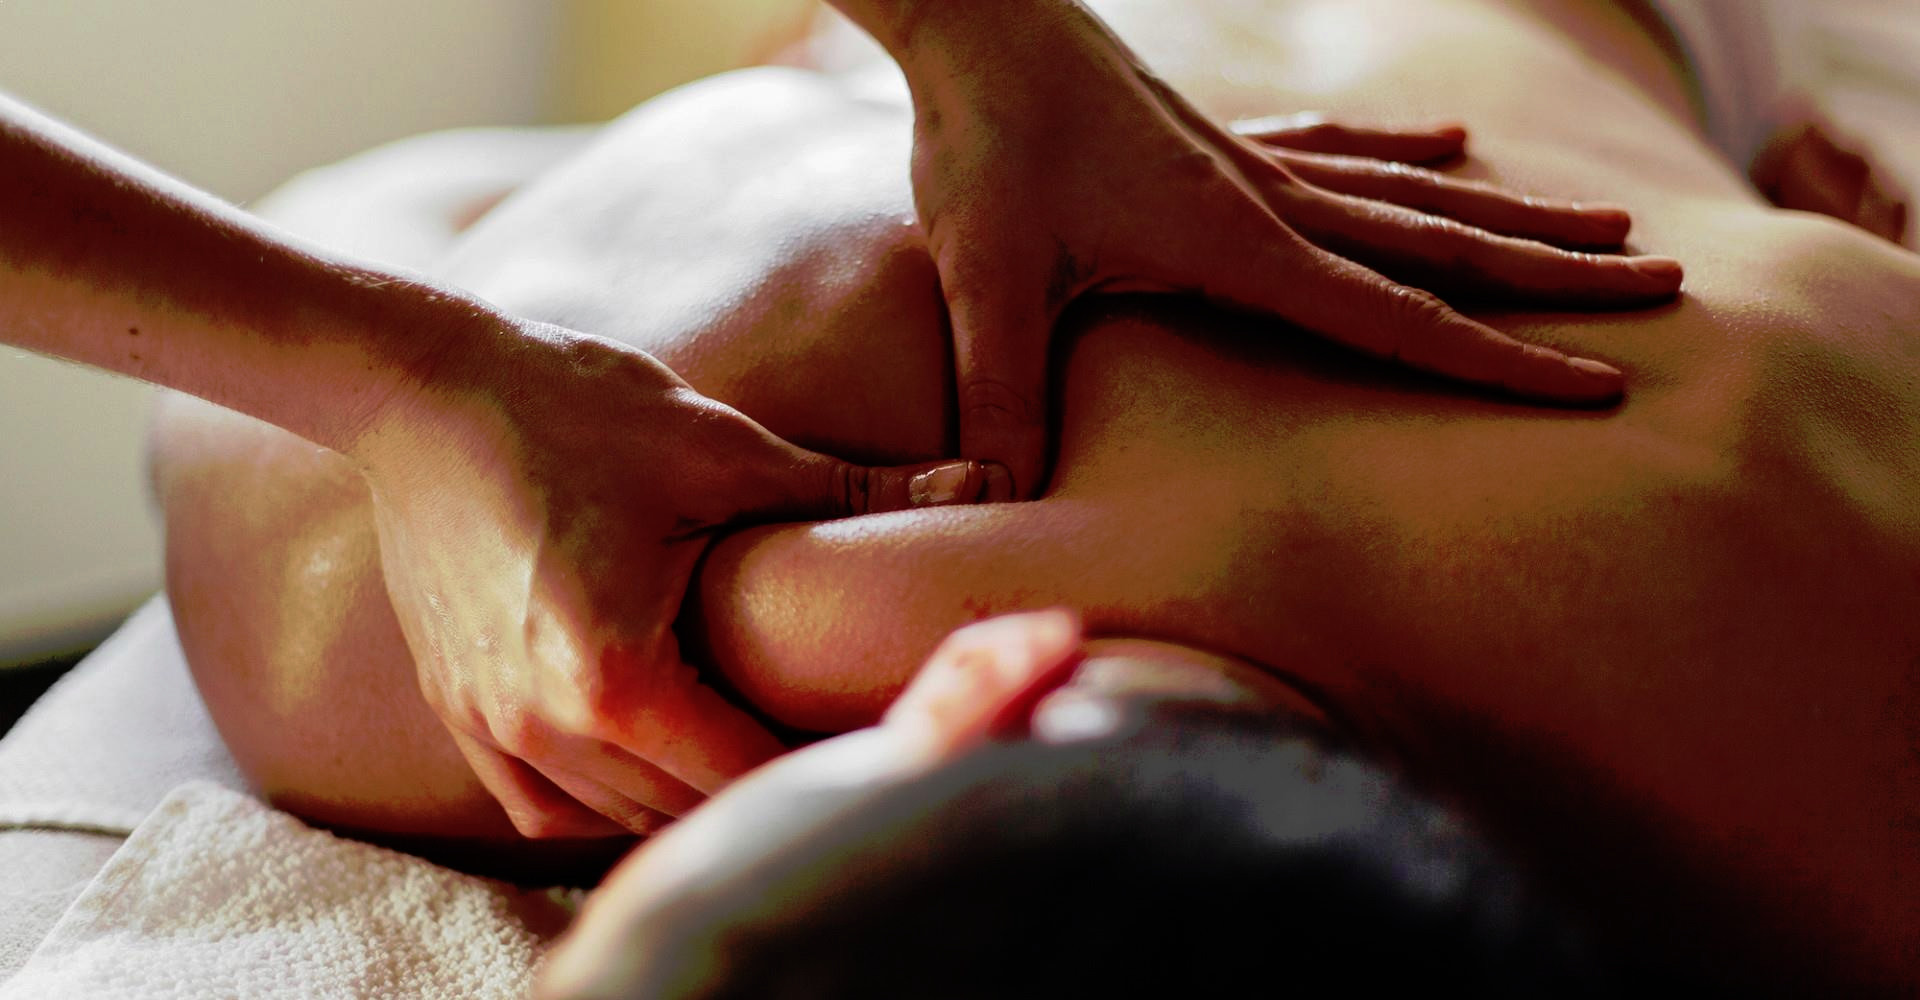 Close-up of masseur's hands massaging a client's back